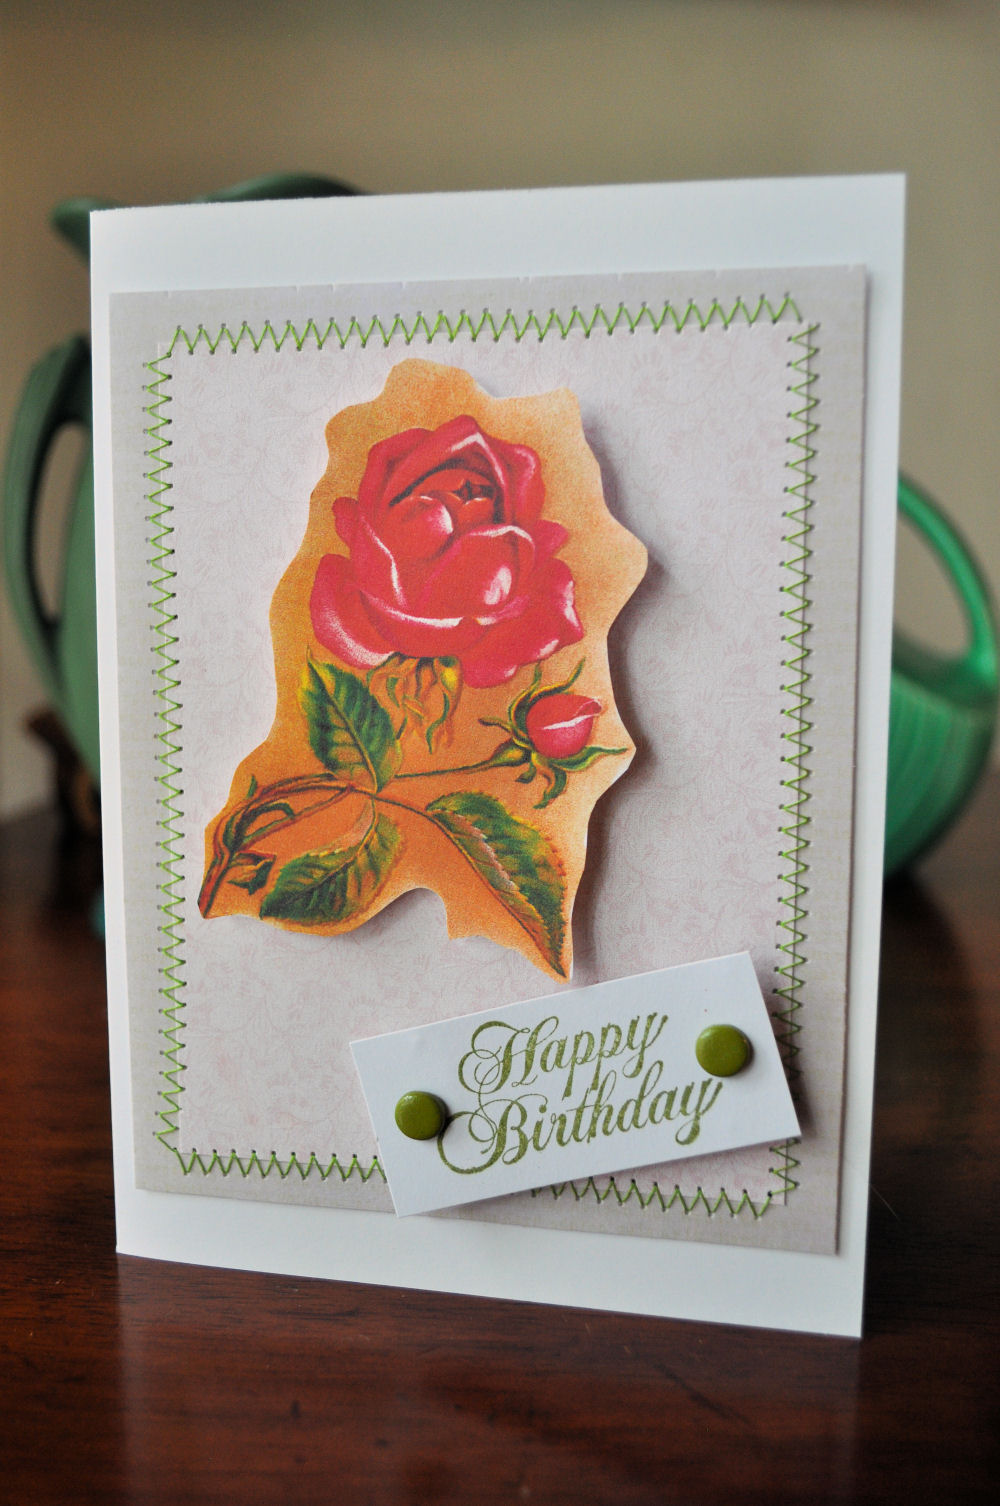 The graphics monarch free card project artist papers ideas birthday card handmade image rose handmade birthday card project kristyandbryce Gallery